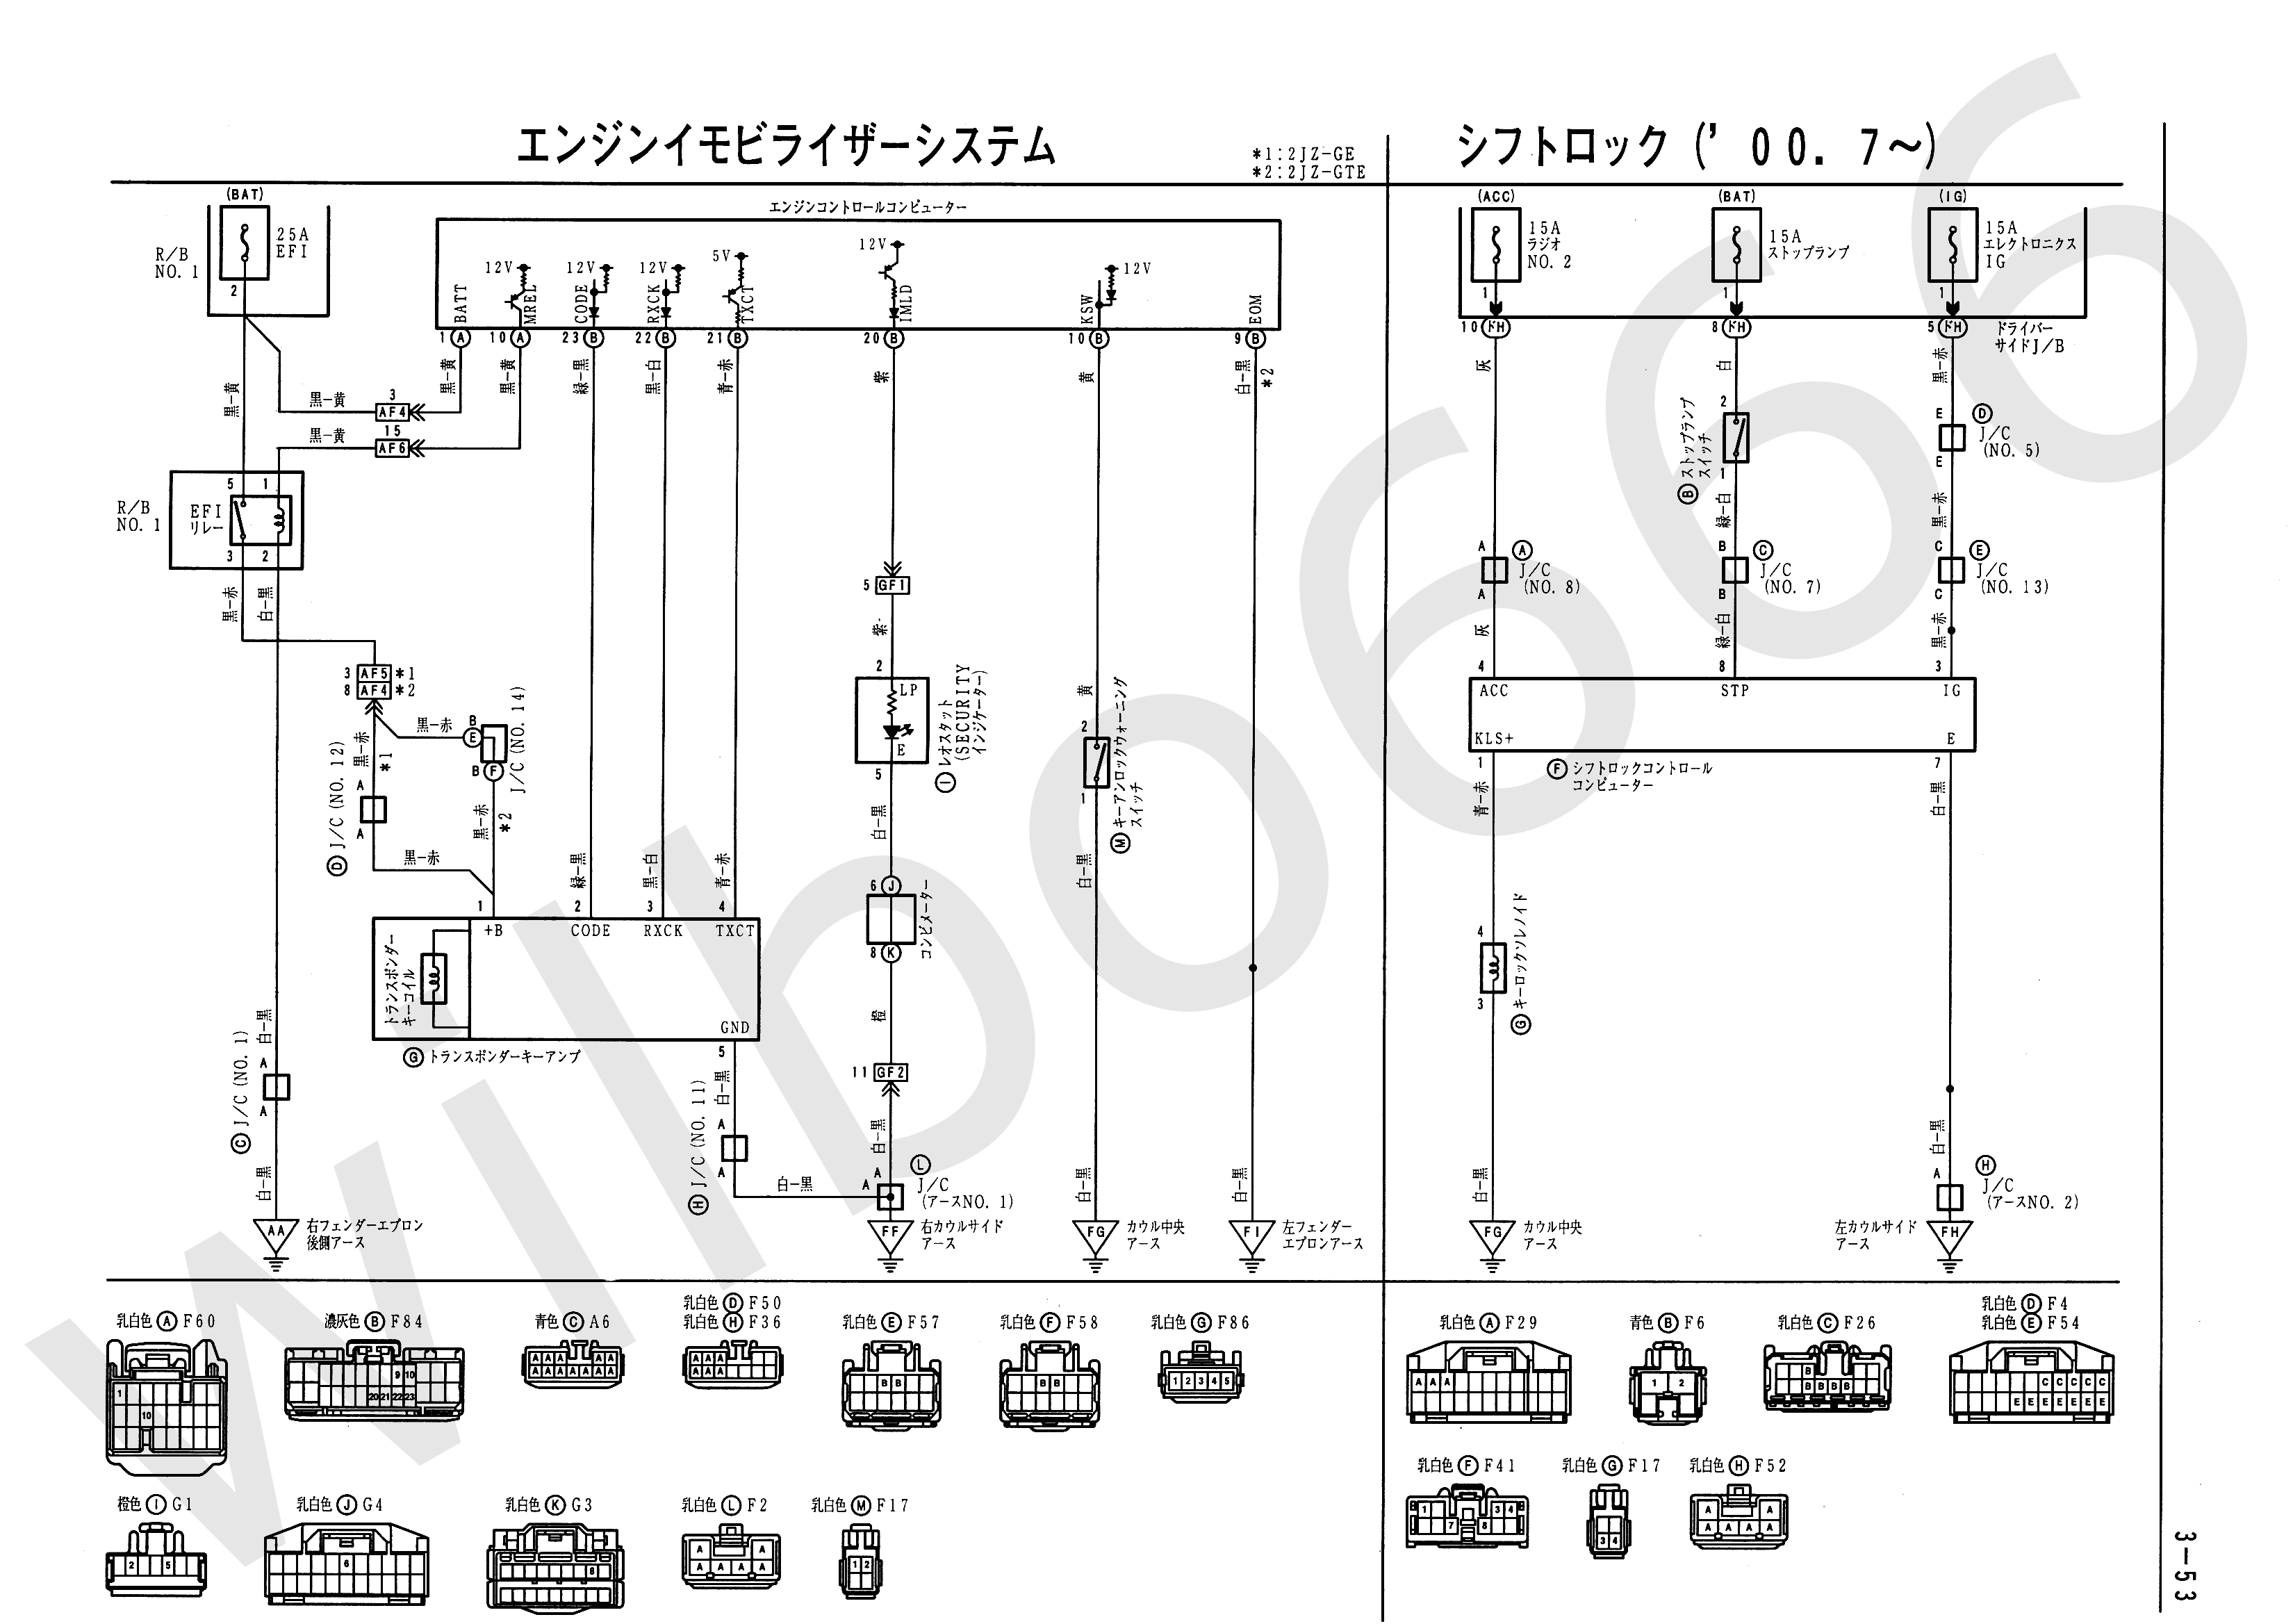 JZS161 Electrical Wiring Diagram 6748505 3 53 apexi vafc wiring diagram apexi vafc wiring diagram at mifinder.co